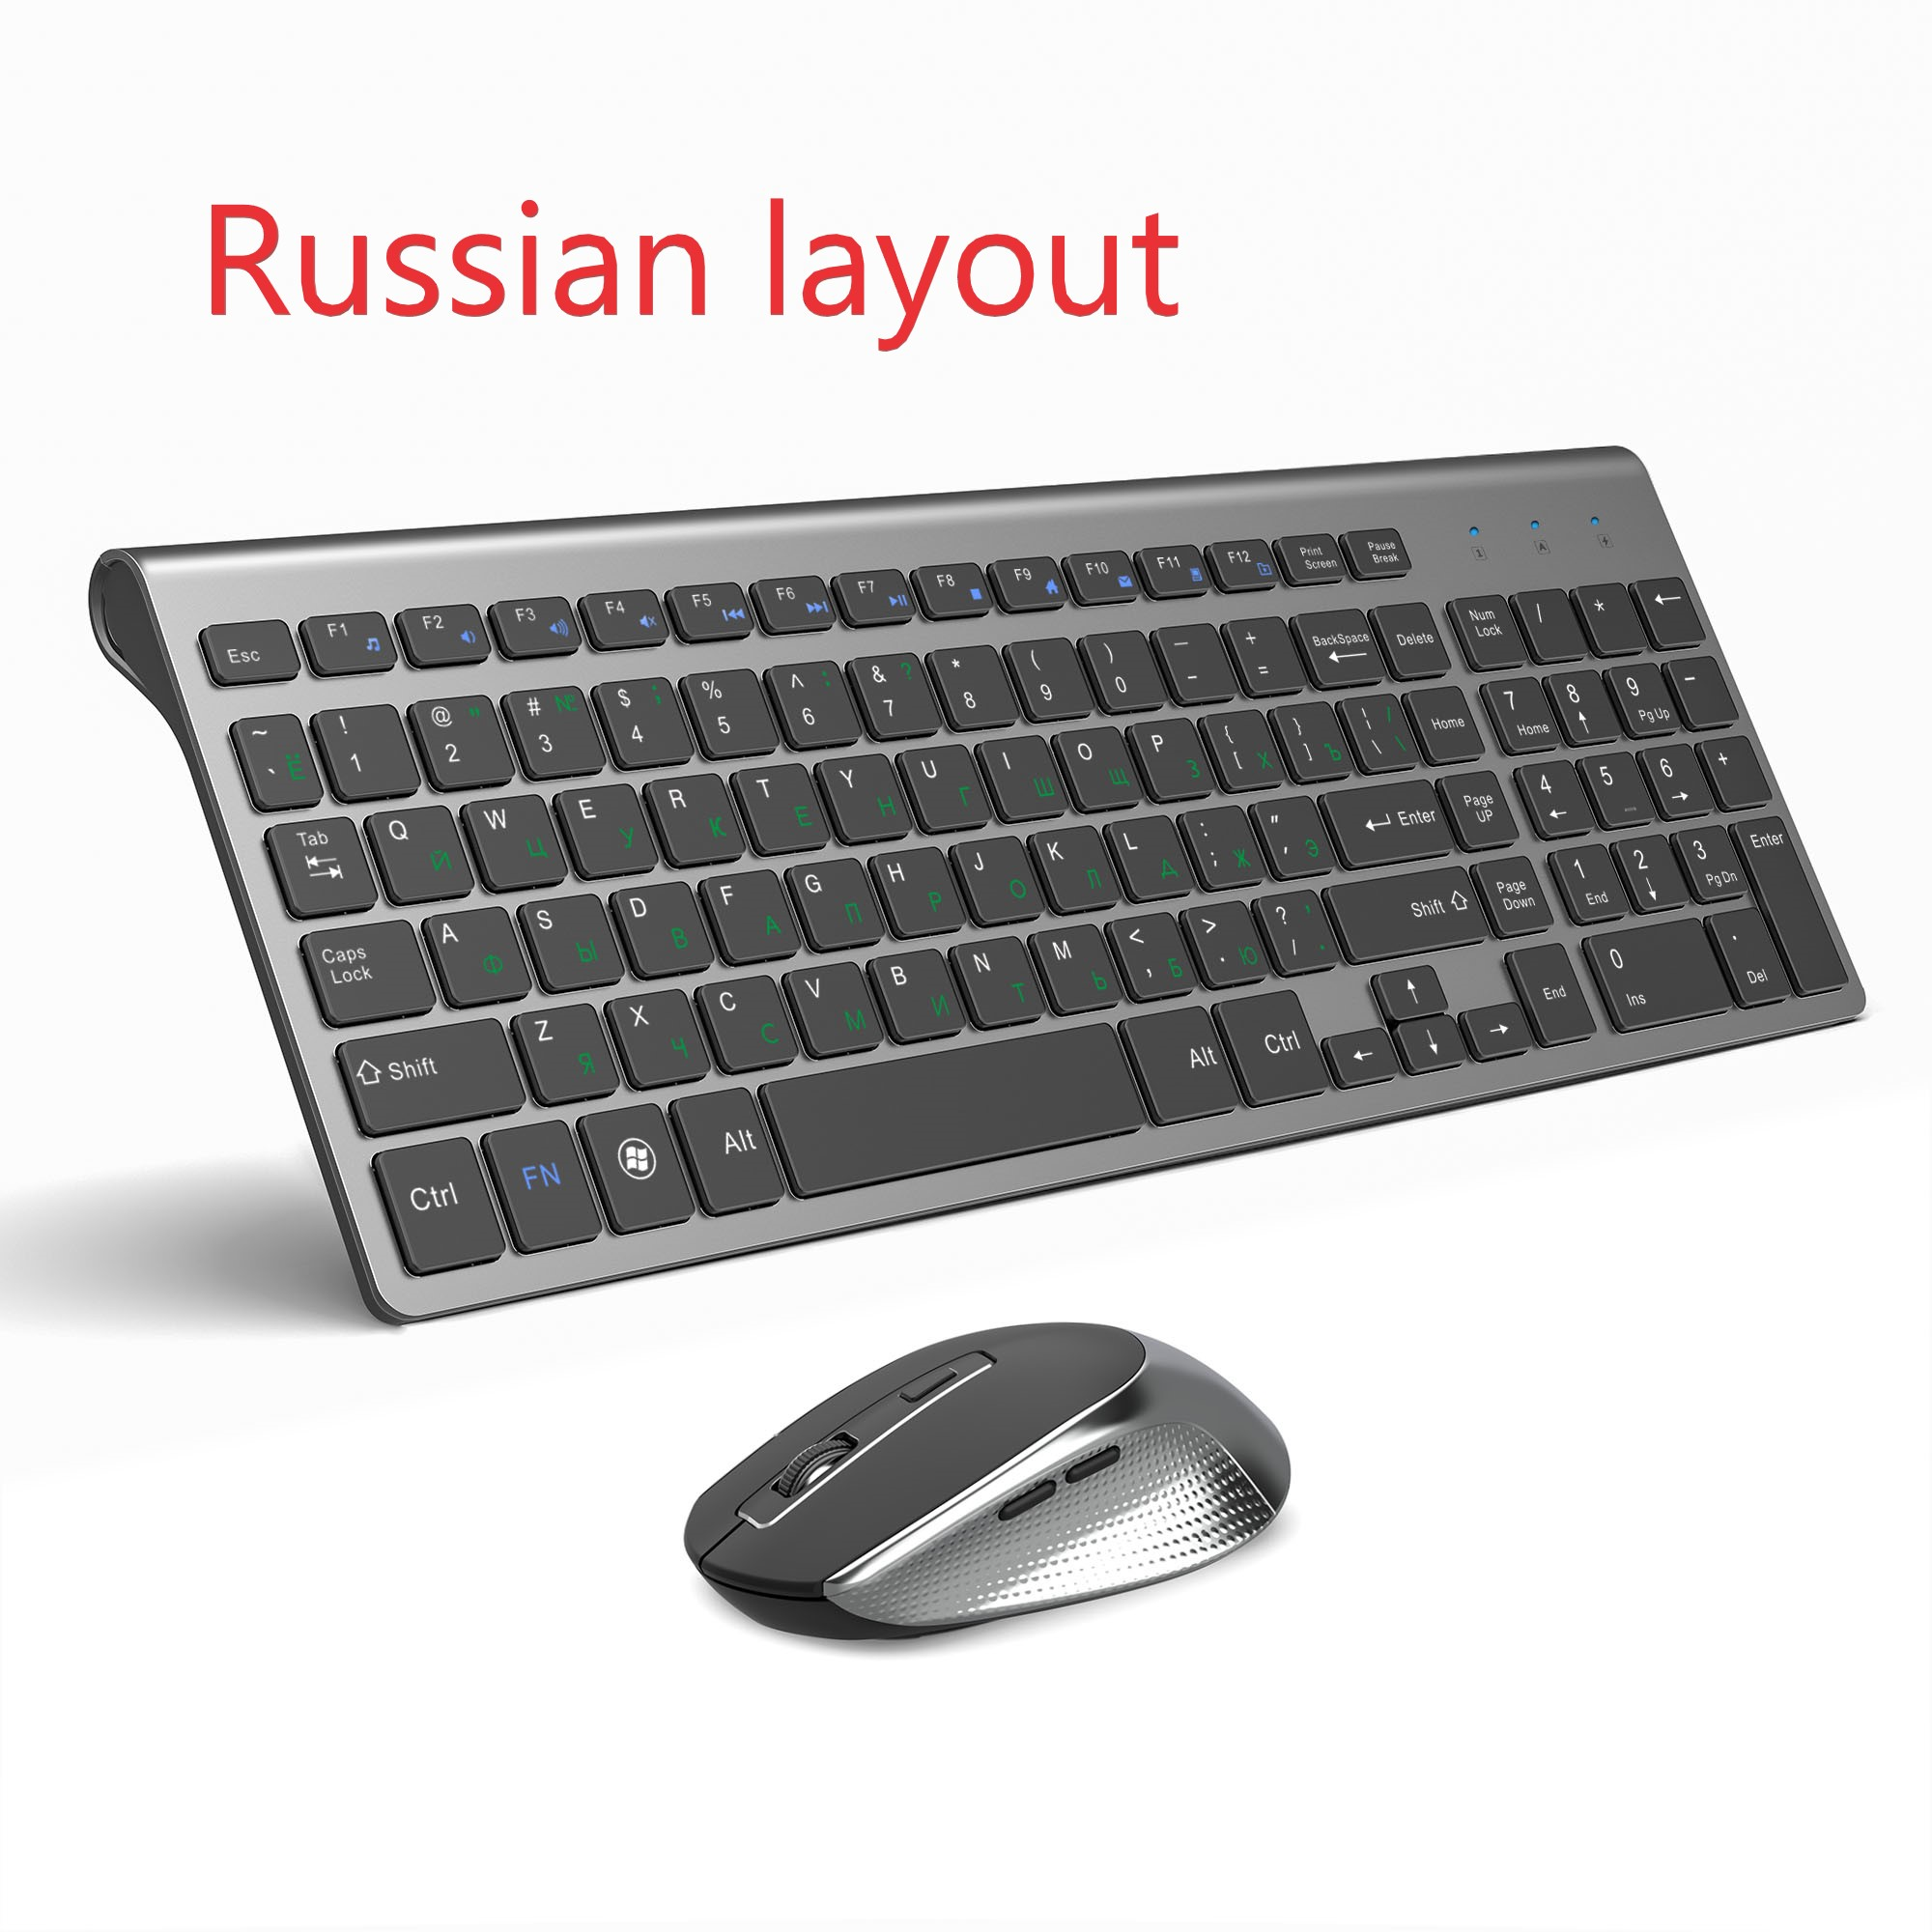 Russian Keyboard Wireless Keyboard Mouse Set USB Receiver With Small Digital Compact Keyboard For Home Office Silent Mouse